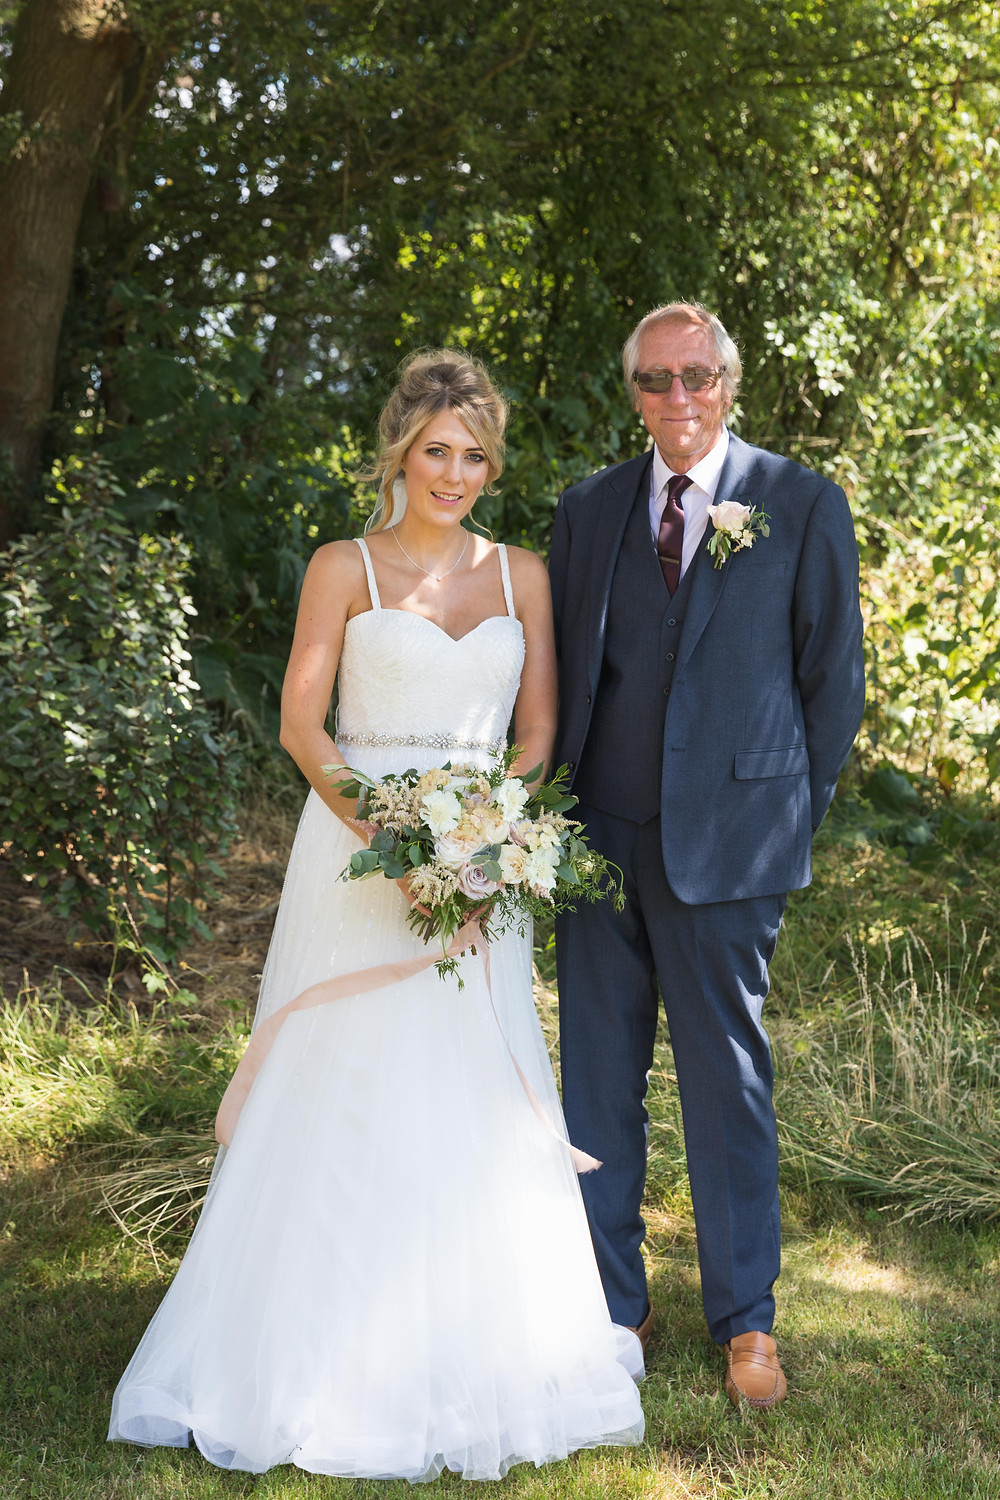 Beautiful portrait of the Bride & her Father